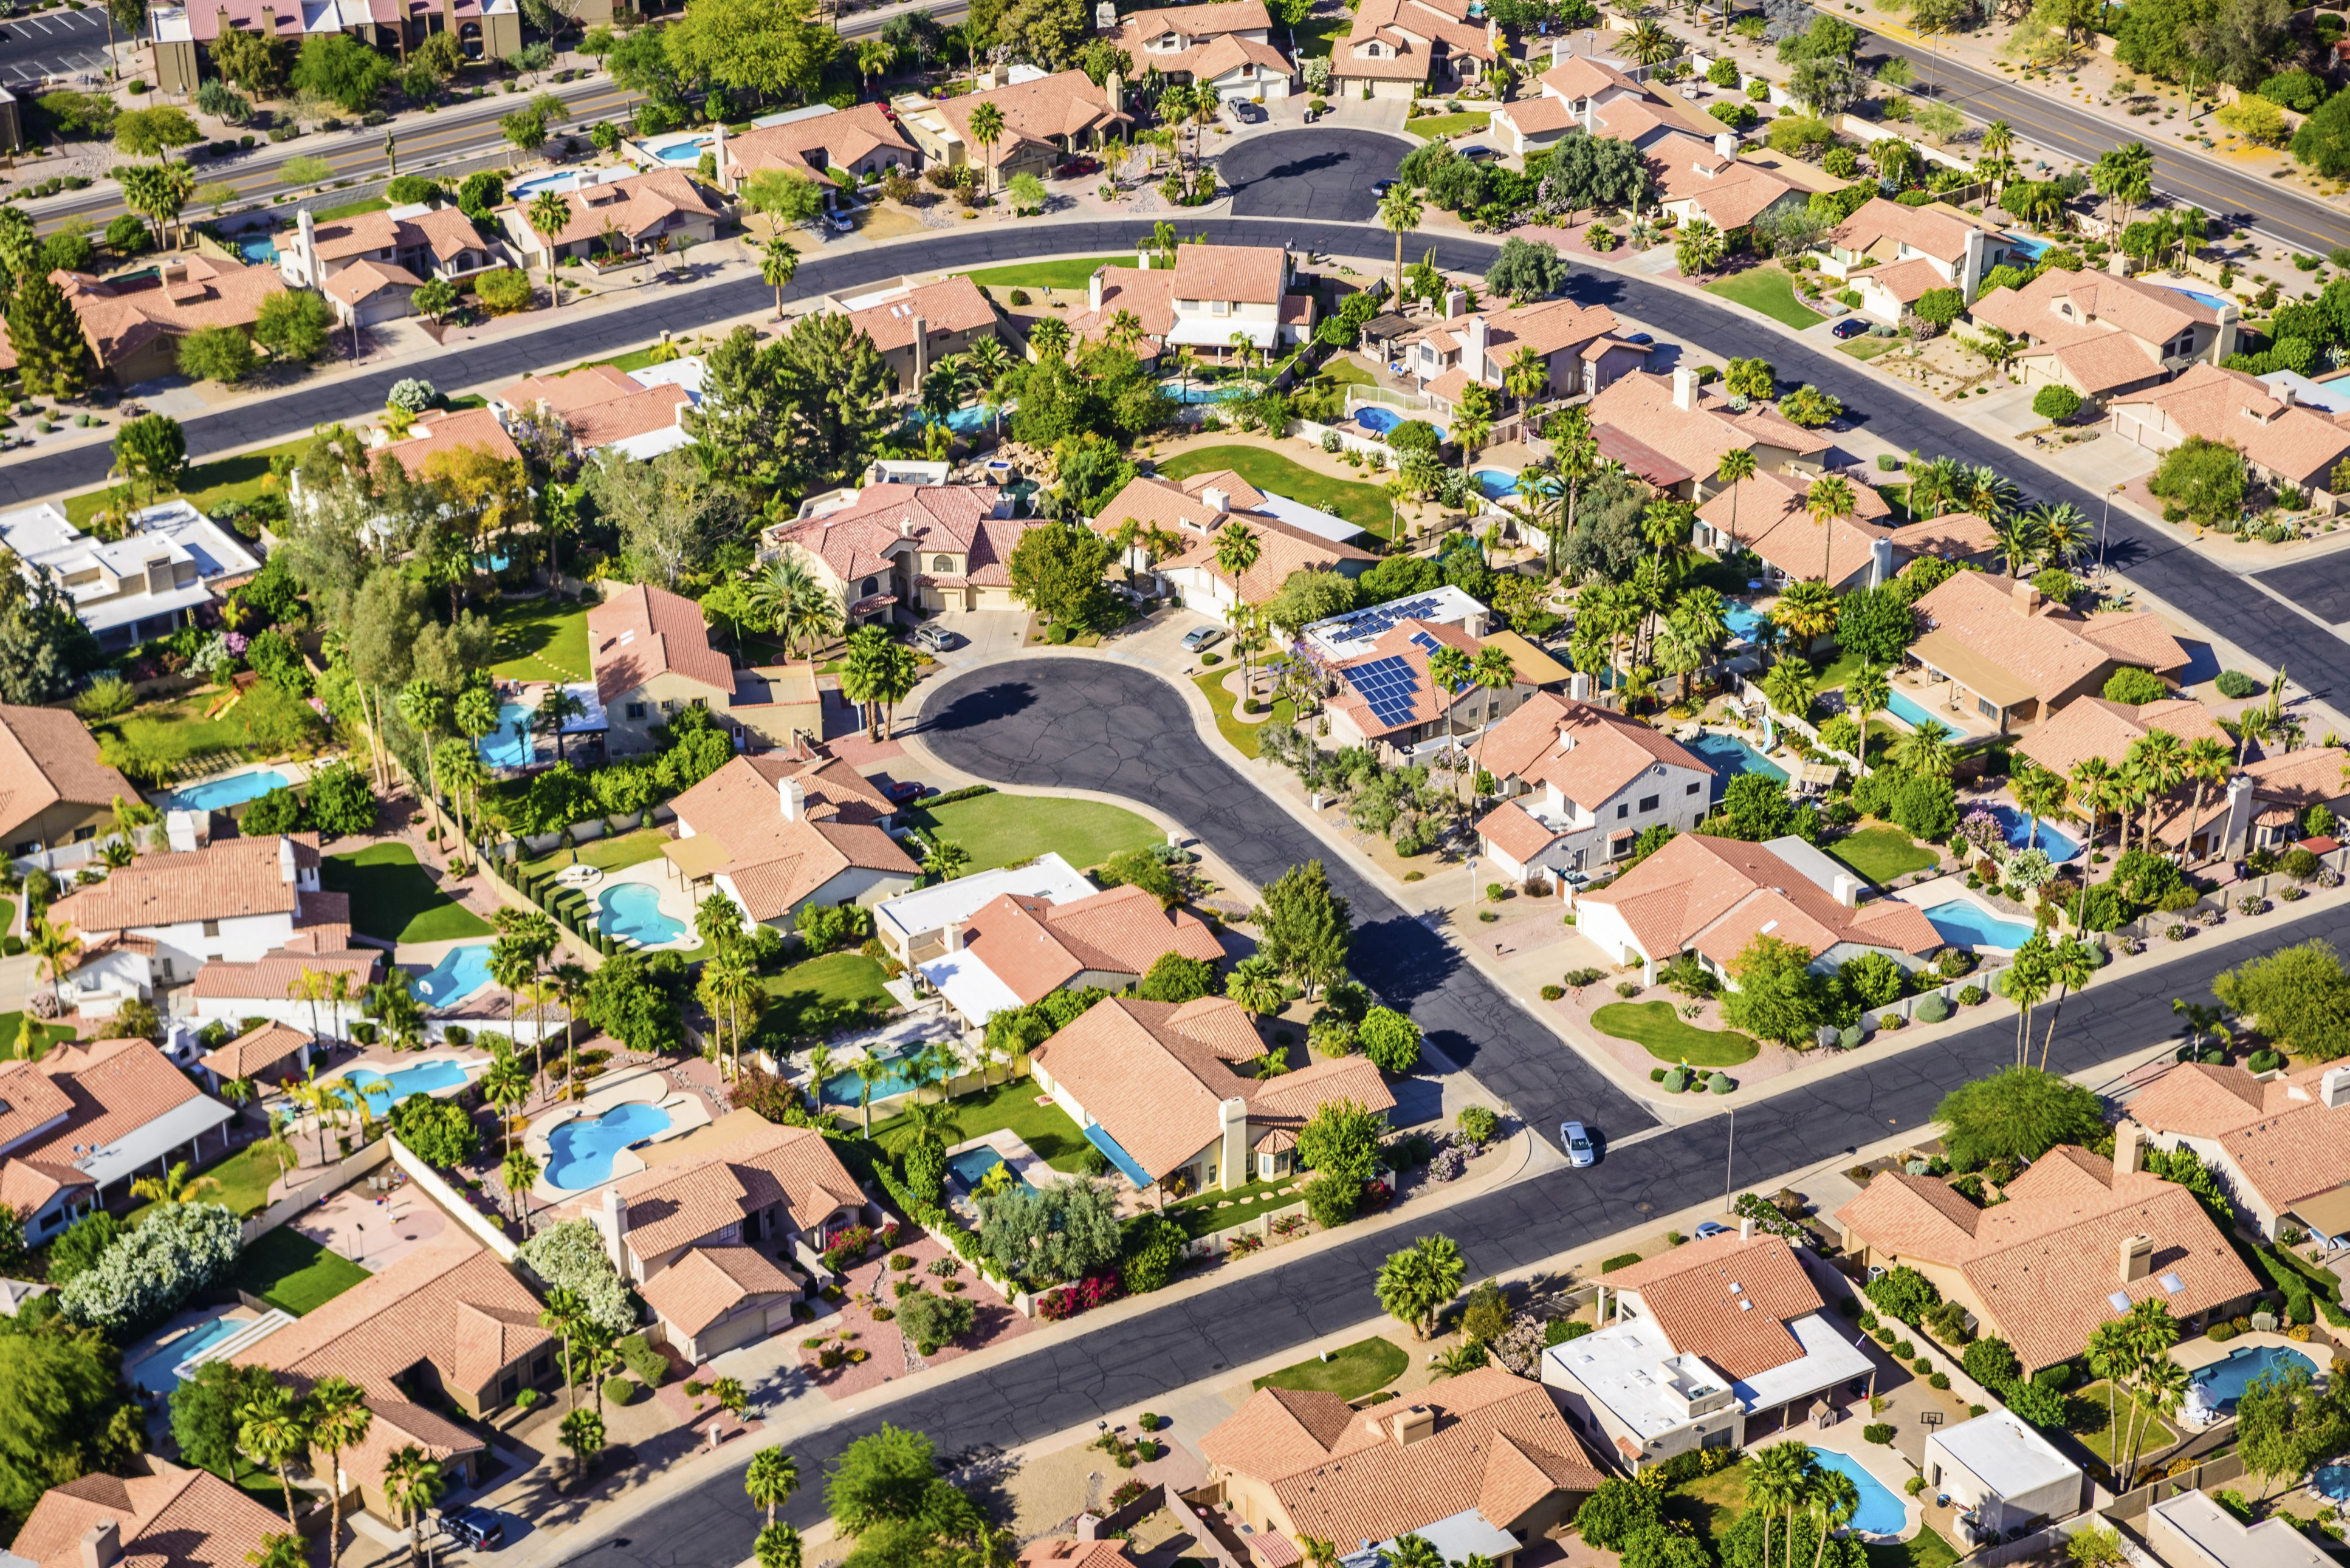 Top 5 Things To Consider When Buying A Home In Phoenix